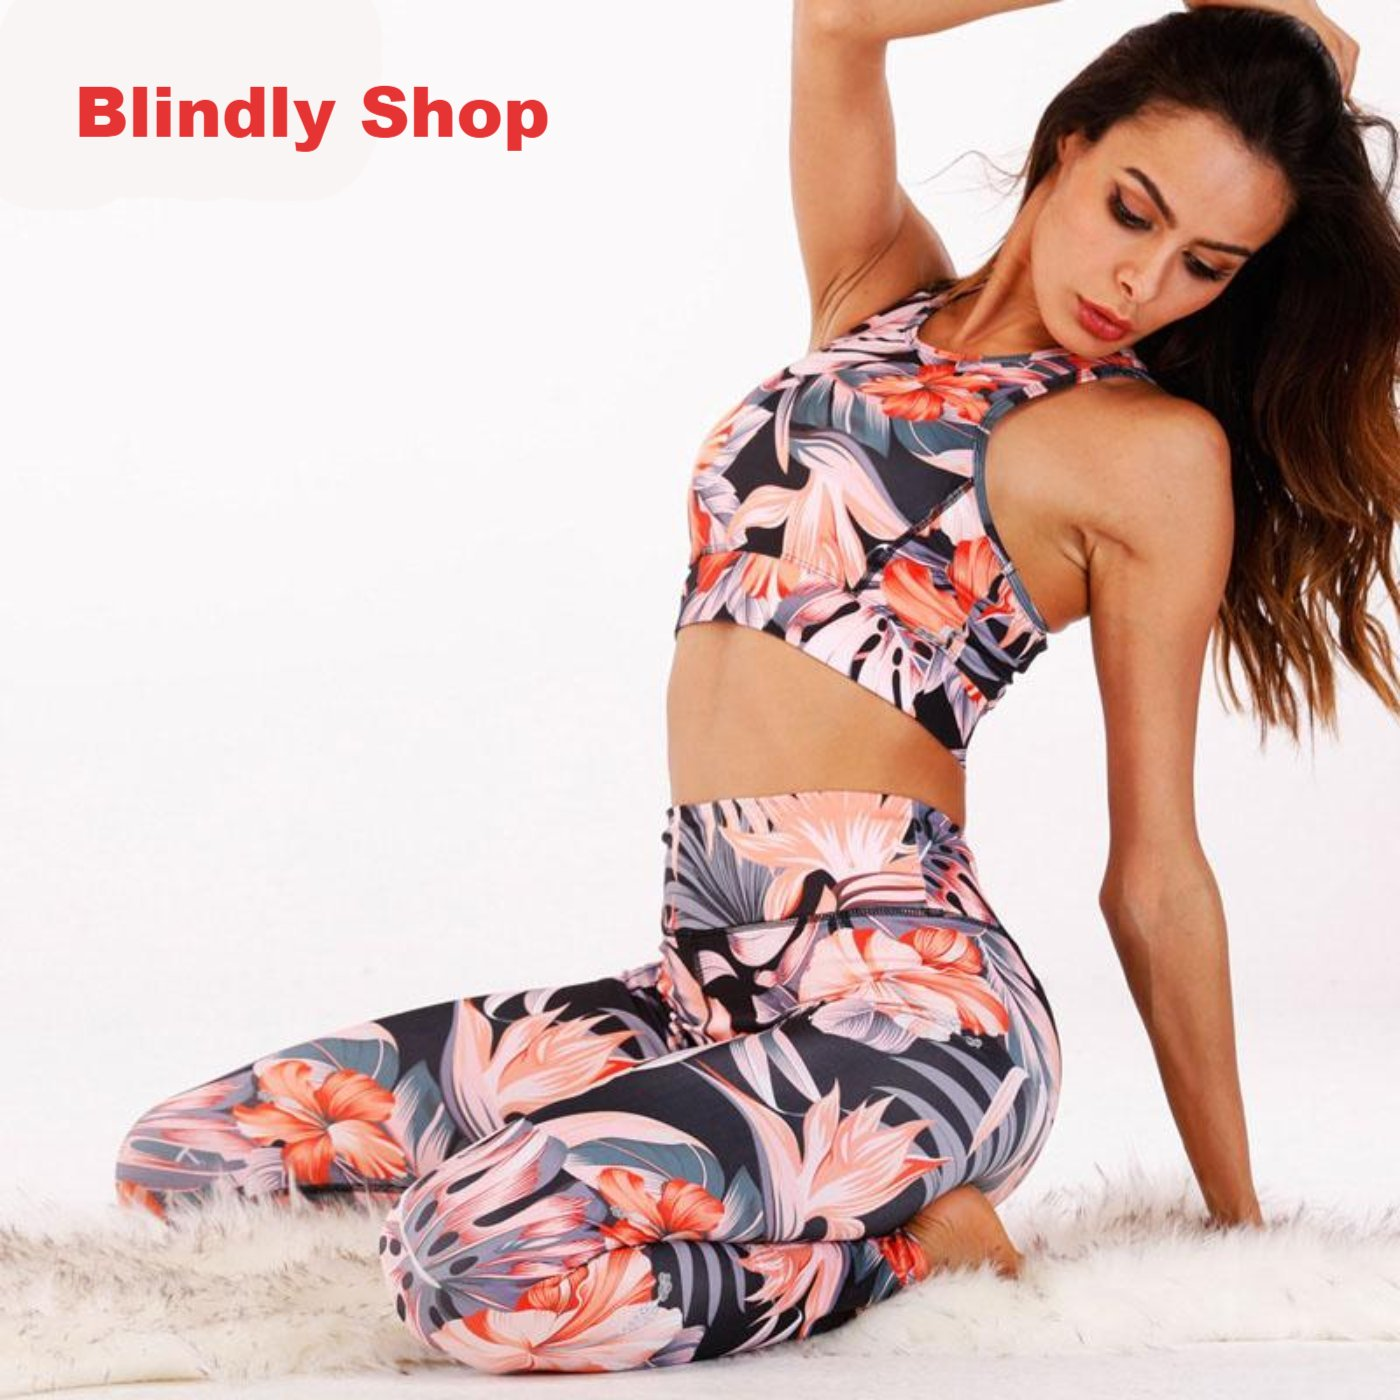 Women Yoga / Fitness /Sport/ Jogging/  Running 2 piece suit set - Blindly Shop